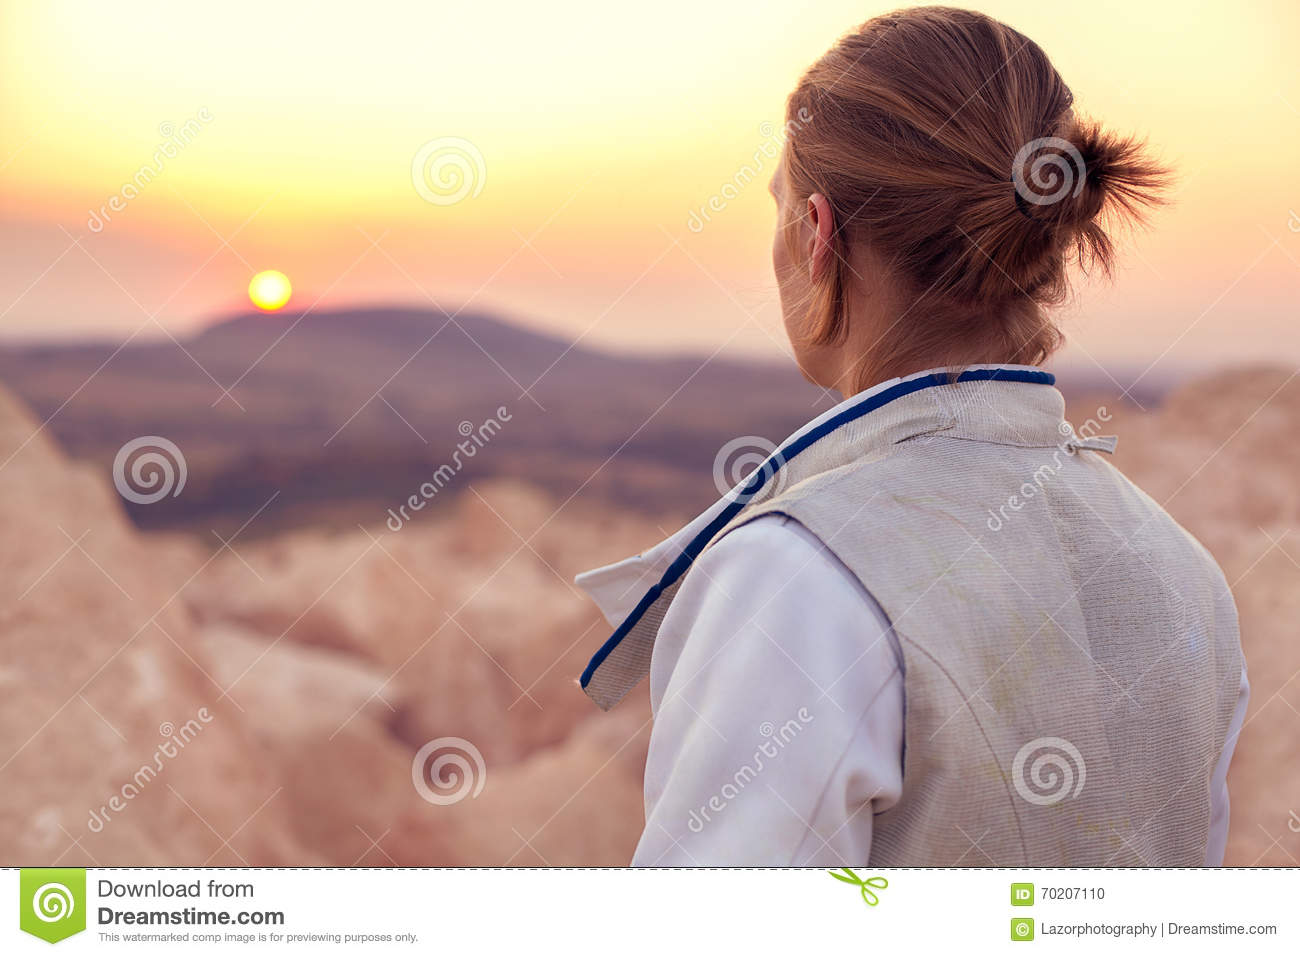 Fencer man on the rocky background and looking forward to the sun goes down